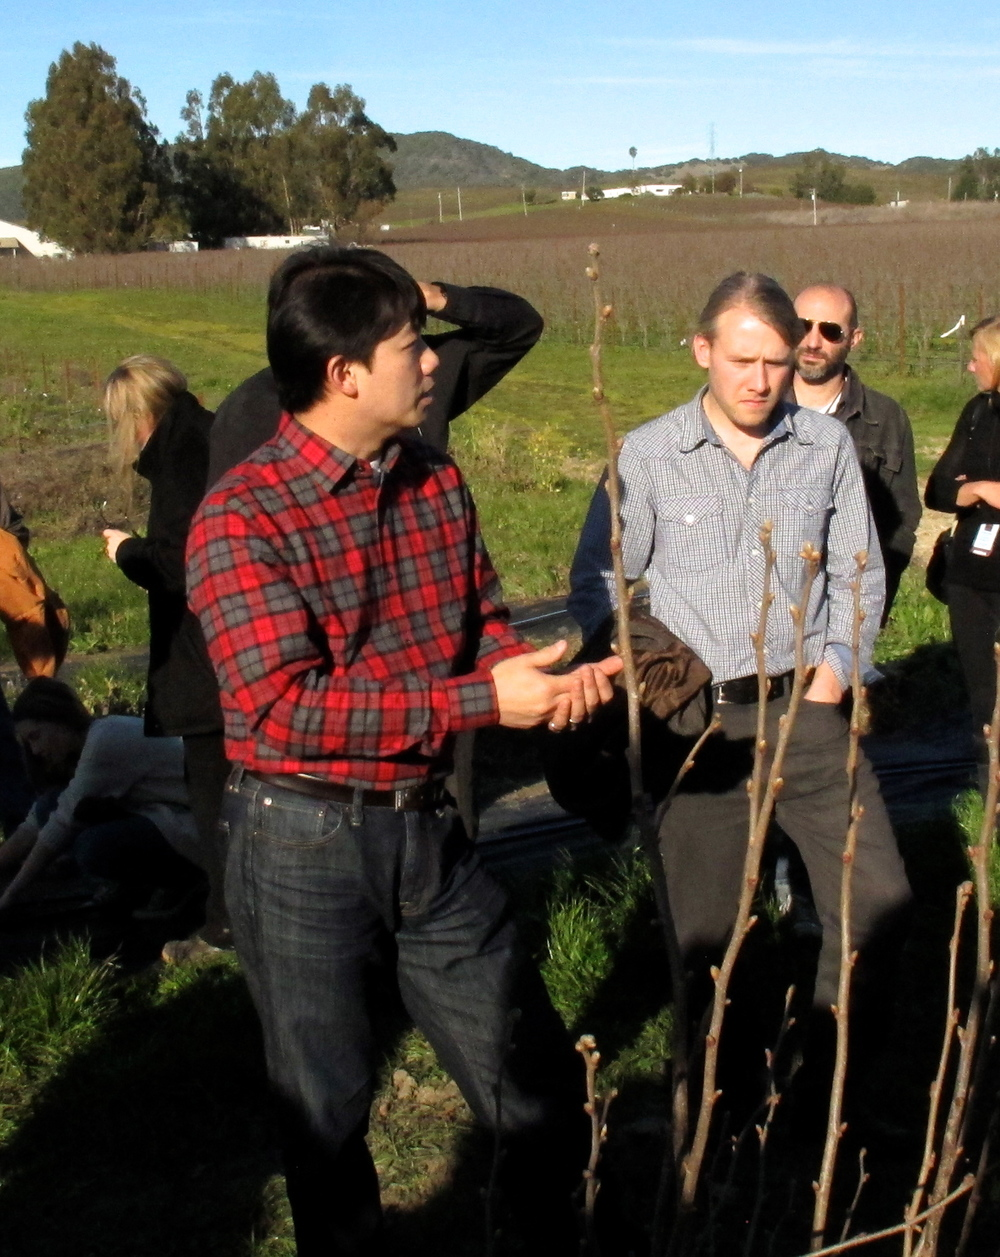 American Truffle Company's dynamic duo, Robert Chang, Managing Director and Dr. Paul Thomas, Partner and Chief Scientist